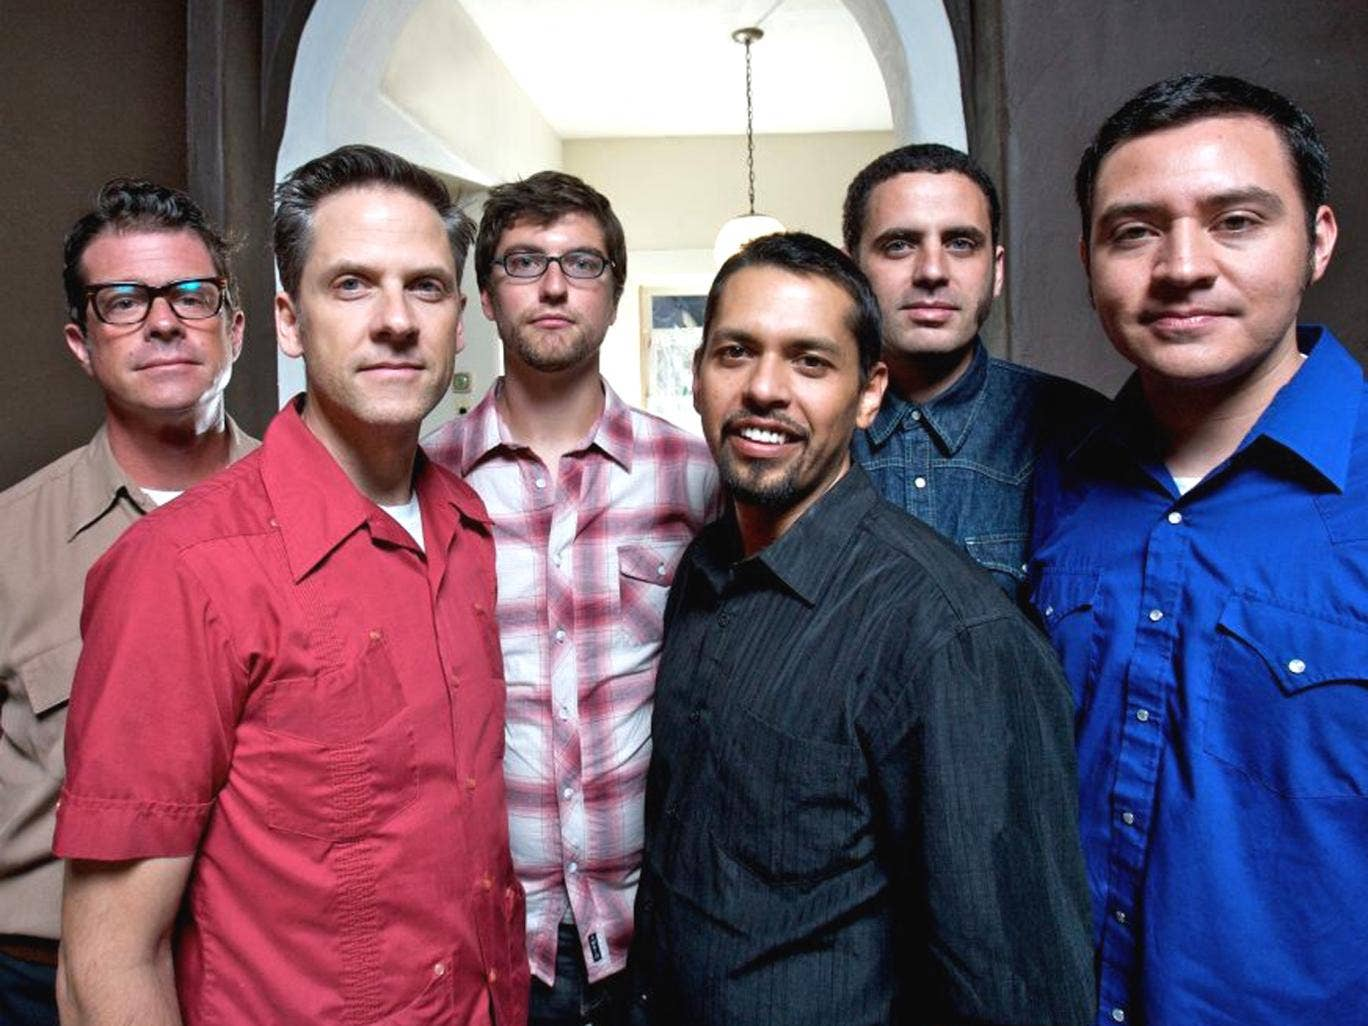 Six of the best: Calexico, with founder members John Convertino (far left) and Joey Burns (second left)